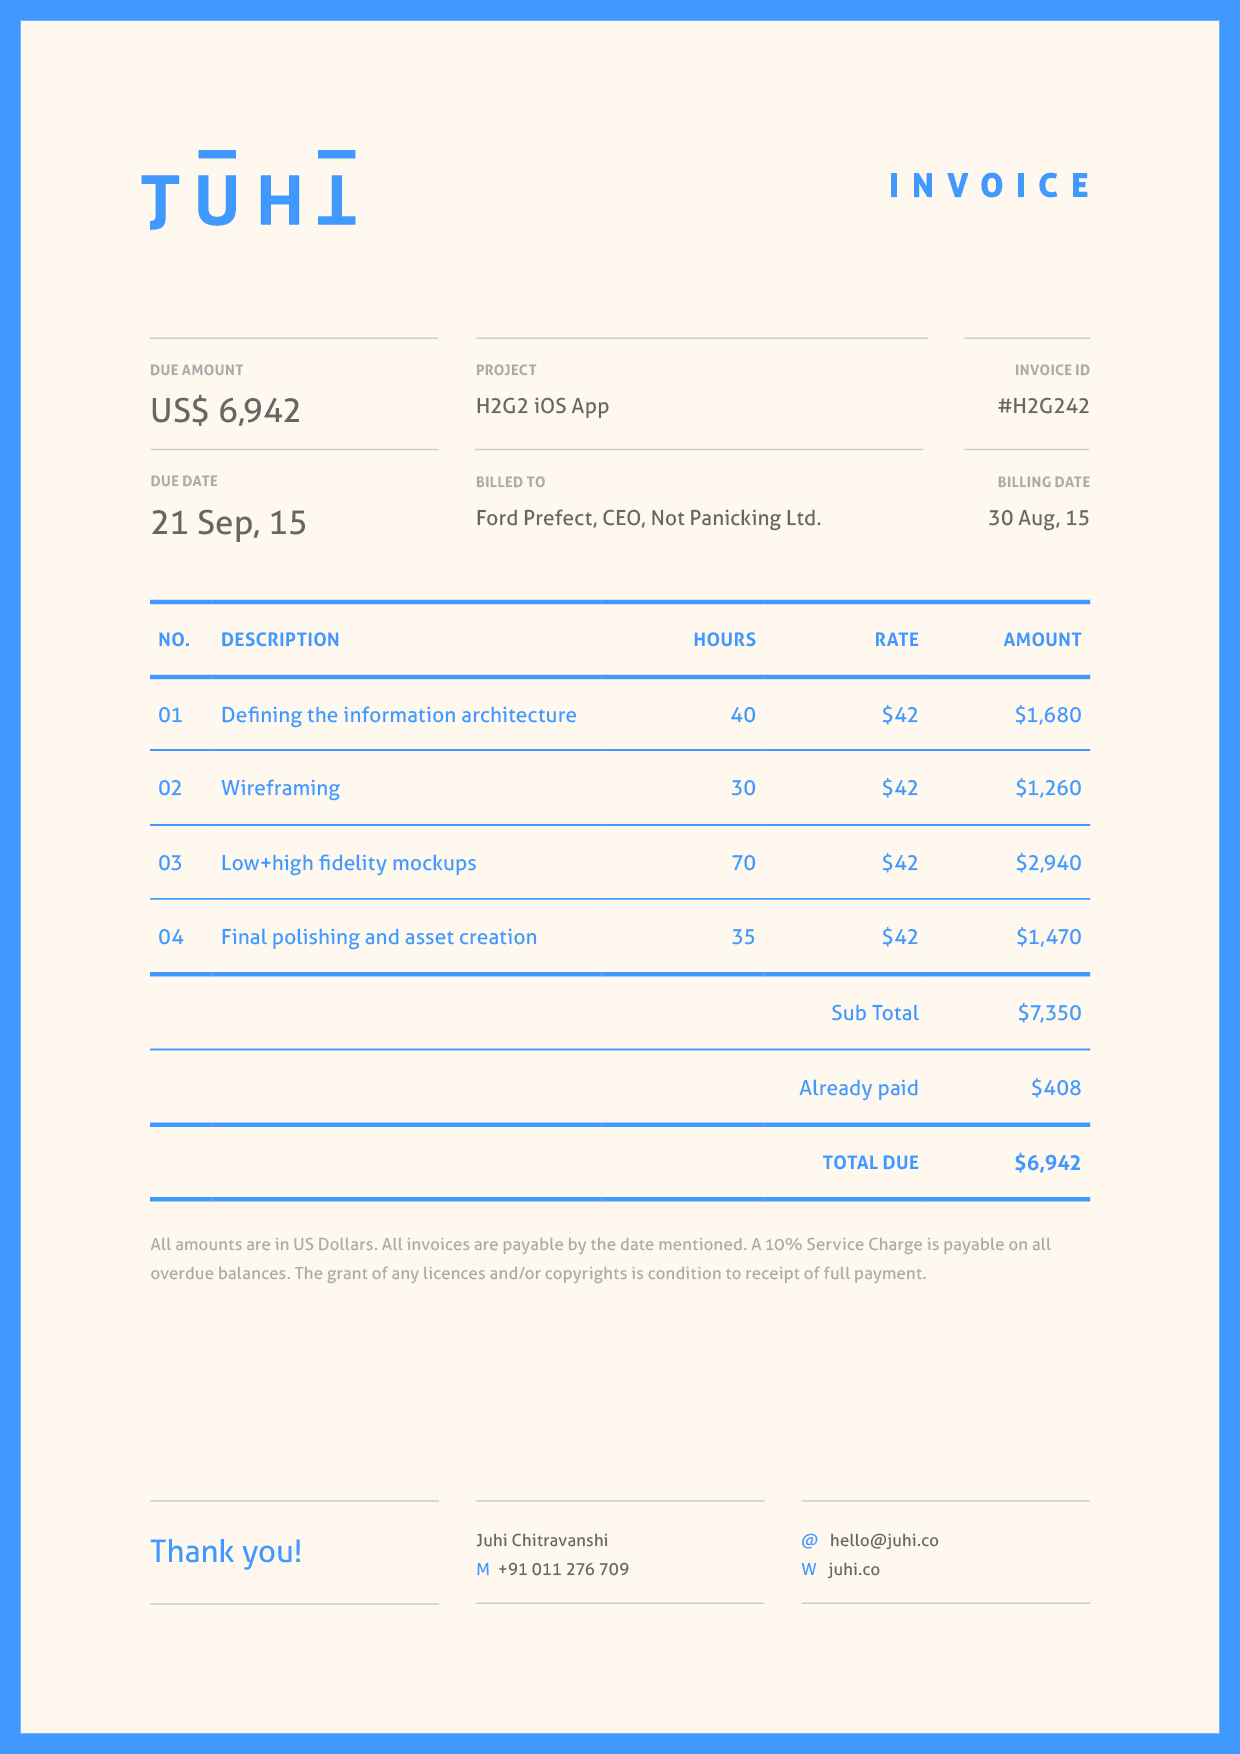 Coolmathgamesus  Pleasing Dont Hold Back On Your Invoice  Inspiring Designs  With Magnificent Invoice By Juhi Chitravanshi Follow With Cool Gdc Receipt Also Hb Receipt Status In Addition Wireless Receipt Printer And Pizza Hut Store Number Receipt As Well As Store Receipt Additionally Delivery Receipt From Inspirationfeedcom With Coolmathgamesus  Magnificent Dont Hold Back On Your Invoice  Inspiring Designs  With Cool Invoice By Juhi Chitravanshi Follow And Pleasing Gdc Receipt Also Hb Receipt Status In Addition Wireless Receipt Printer From Inspirationfeedcom